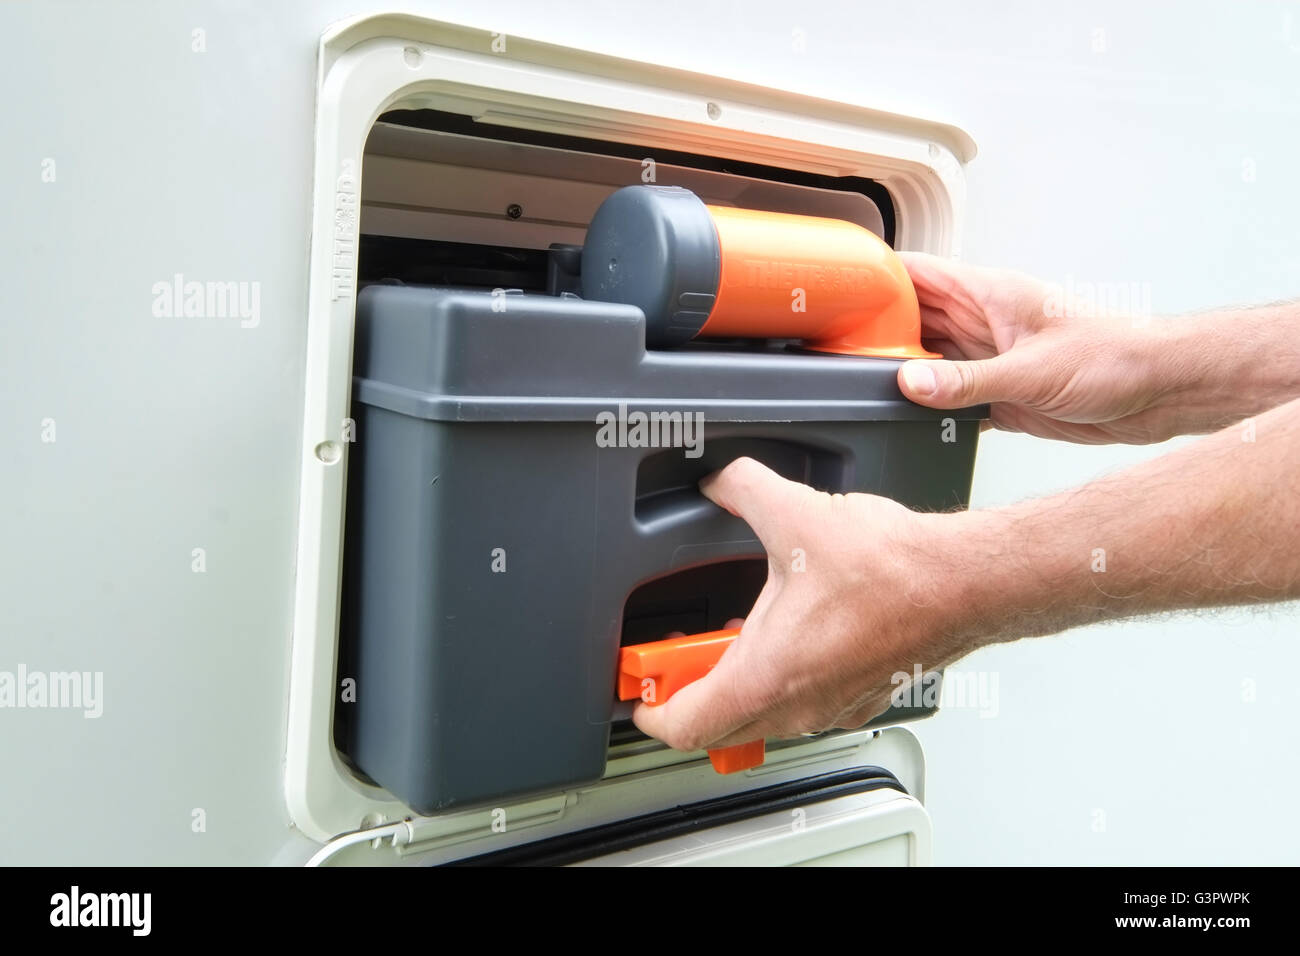 Thetford Cassette Toilet : Man removing a thetford cassette toilet from a motorhome stock